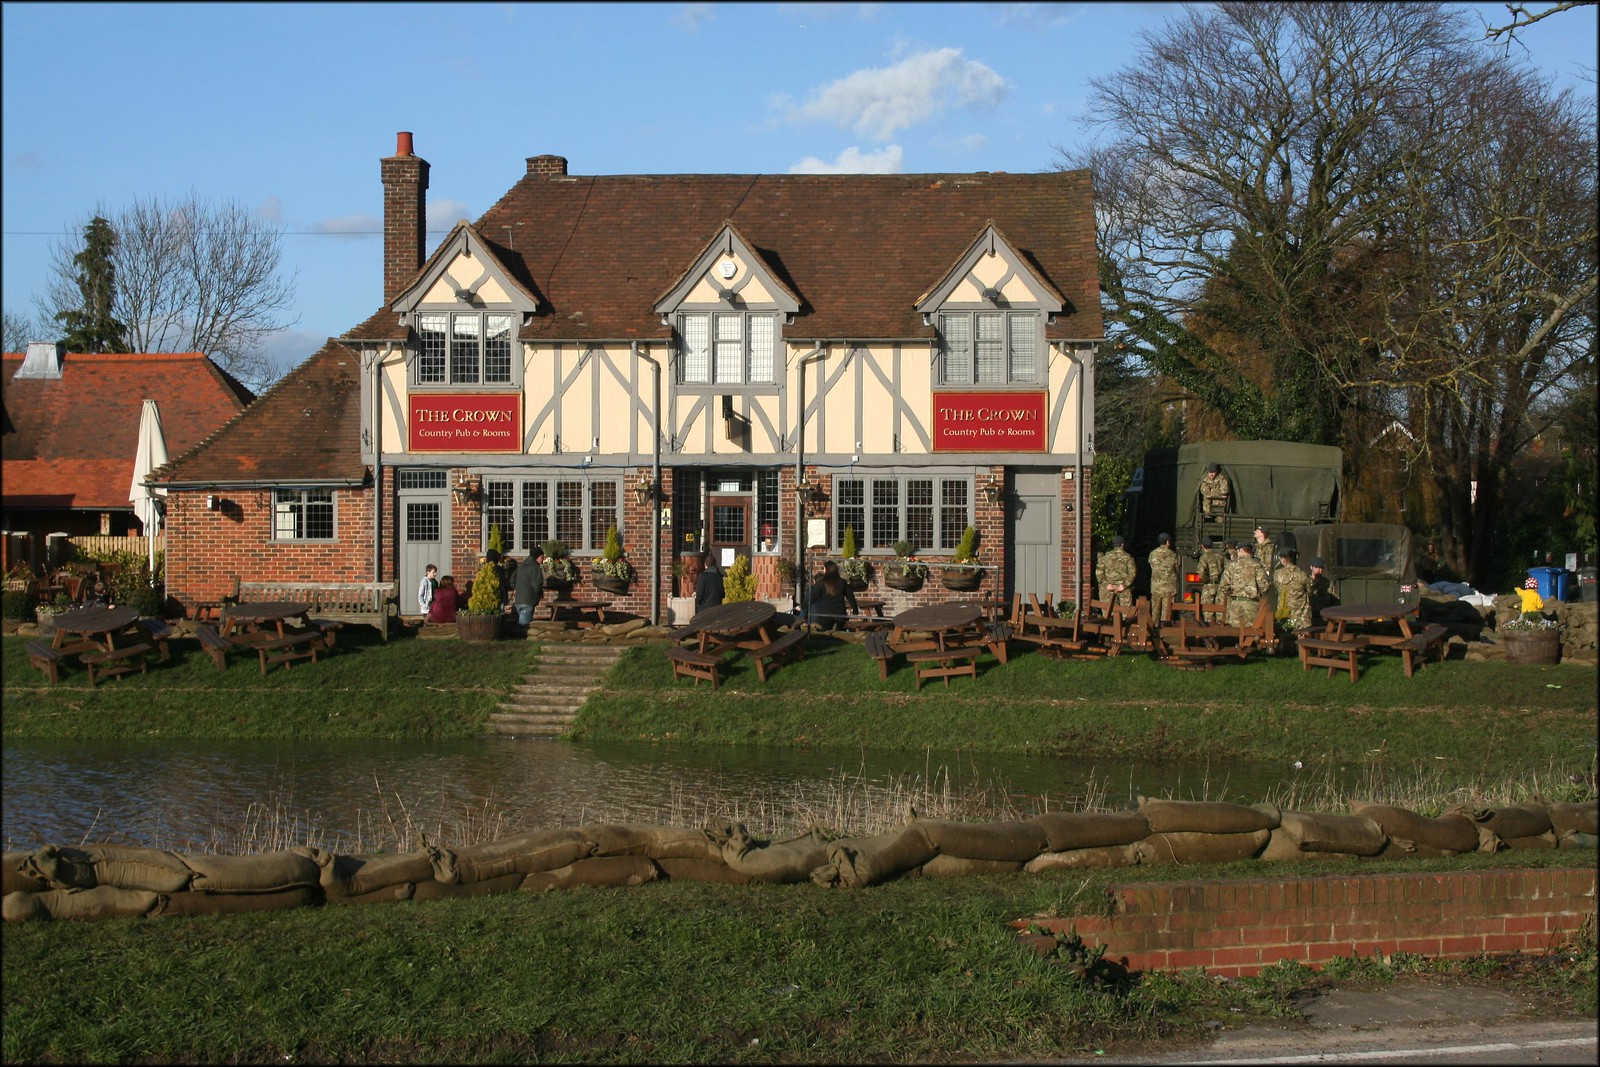 Cookham The army have taken over this pub to distrbute sandbags to help with the Thames which has flooded parts of the village.